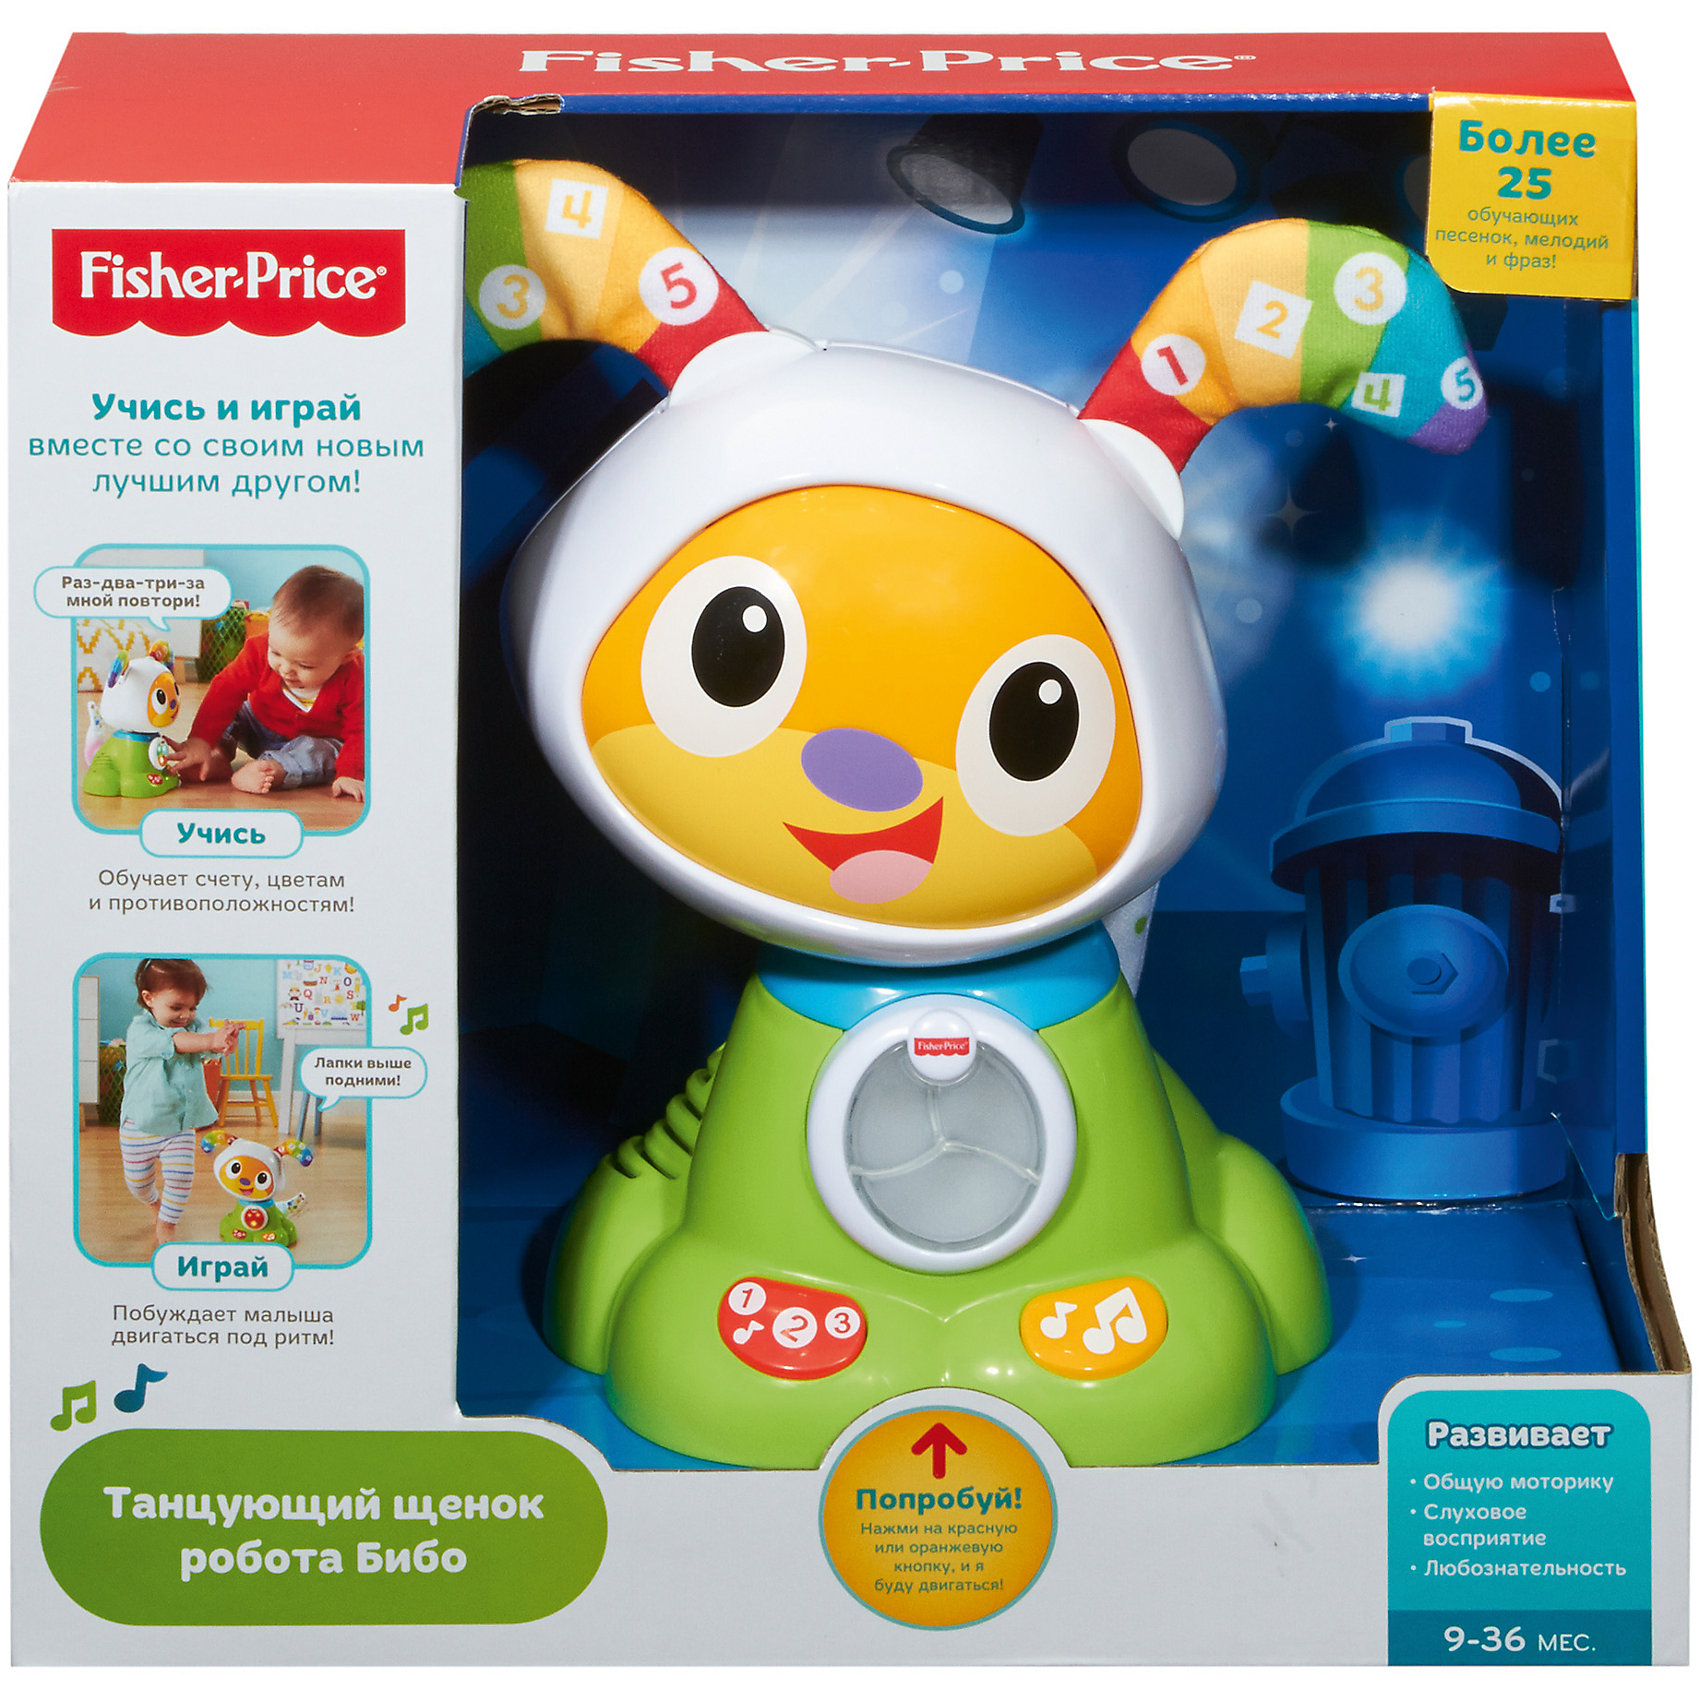 Mattel Щенок Робота Бибо, Fisher Price fisher price игрушка робот бибо fisher price